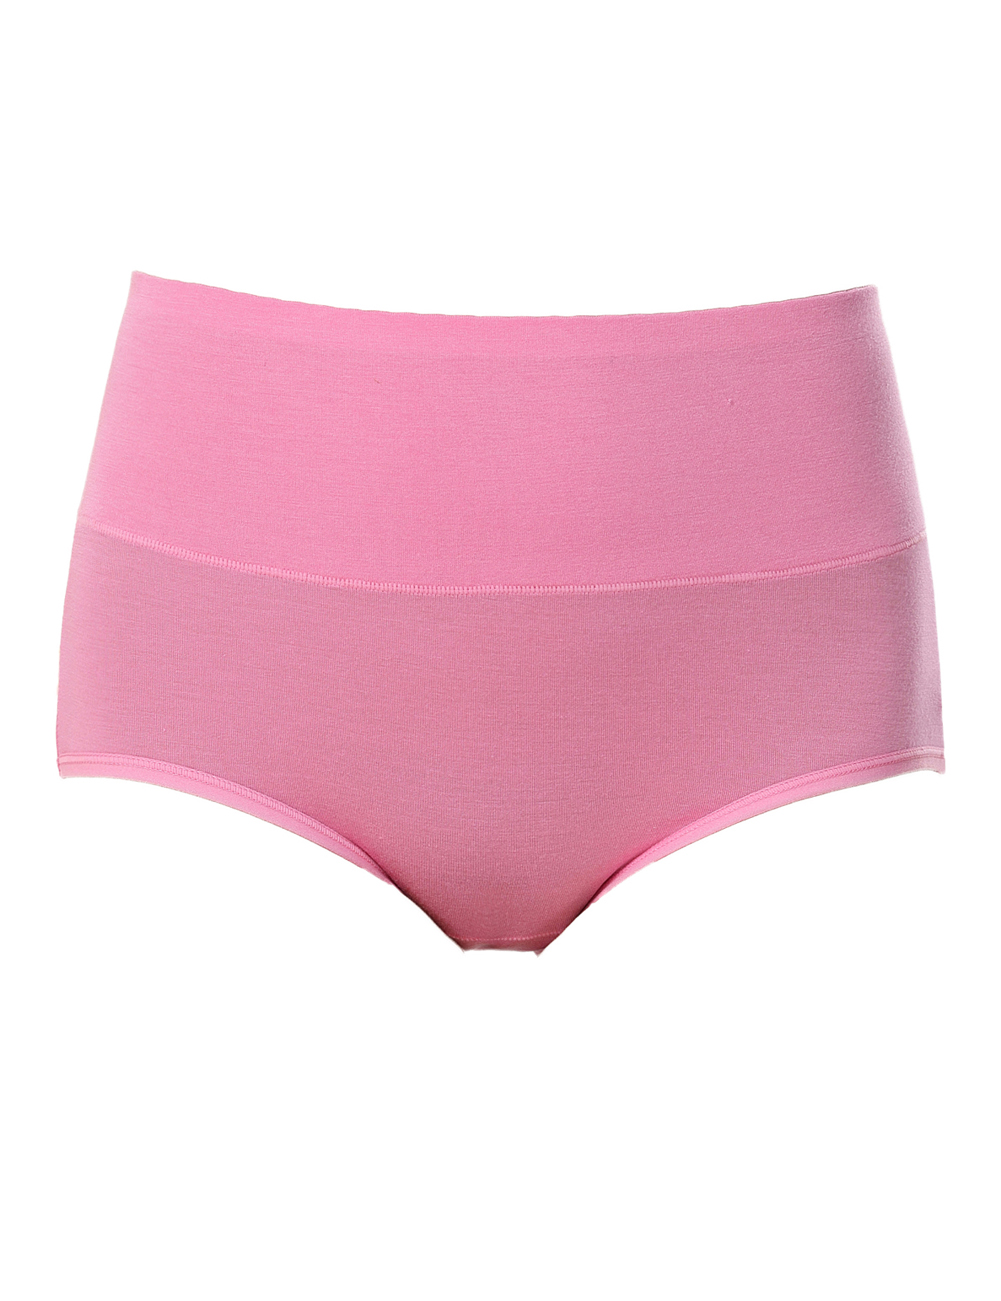 //cdn.affectcloud.com/hexinfashion/upload/imgs/Underwear/Tanga/D180007-RD5/D180007-RD5-201911055dc1234281782.jpg